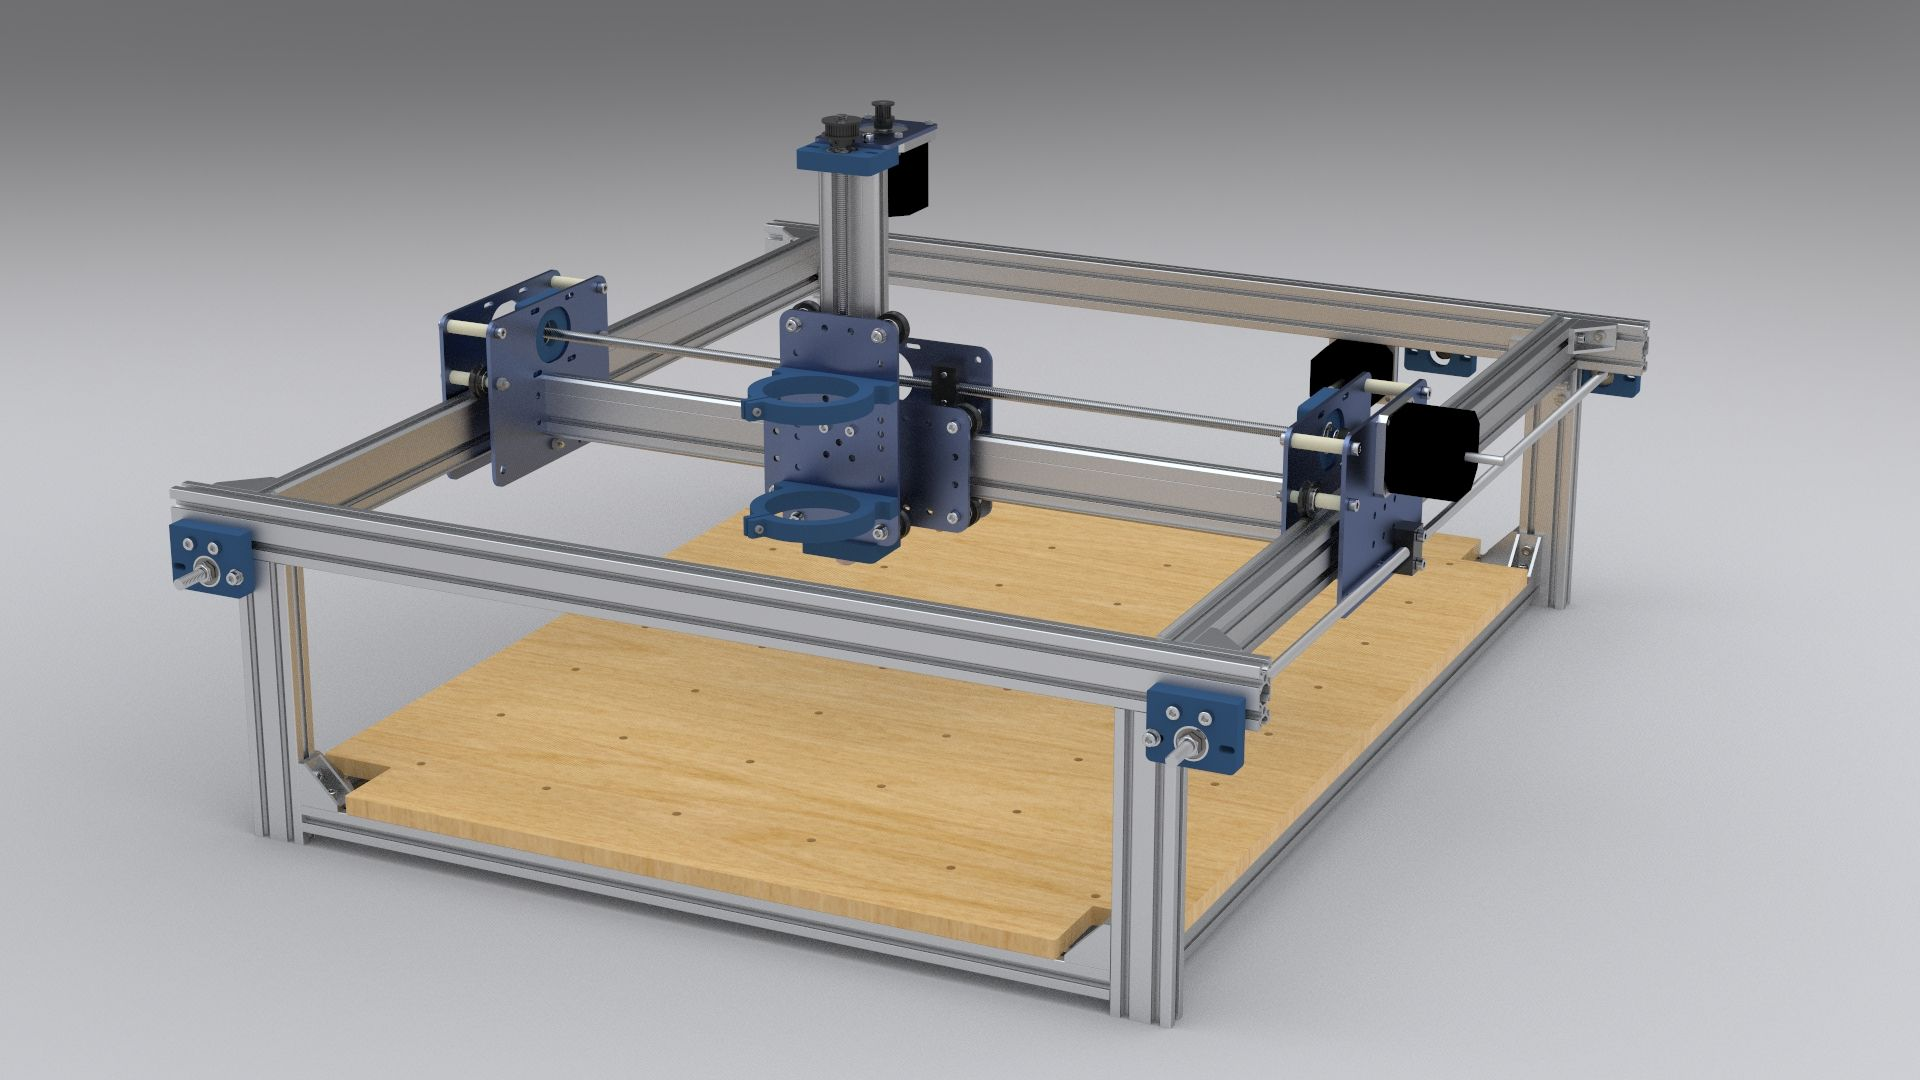 cnc router This CNC router is one of many proposed